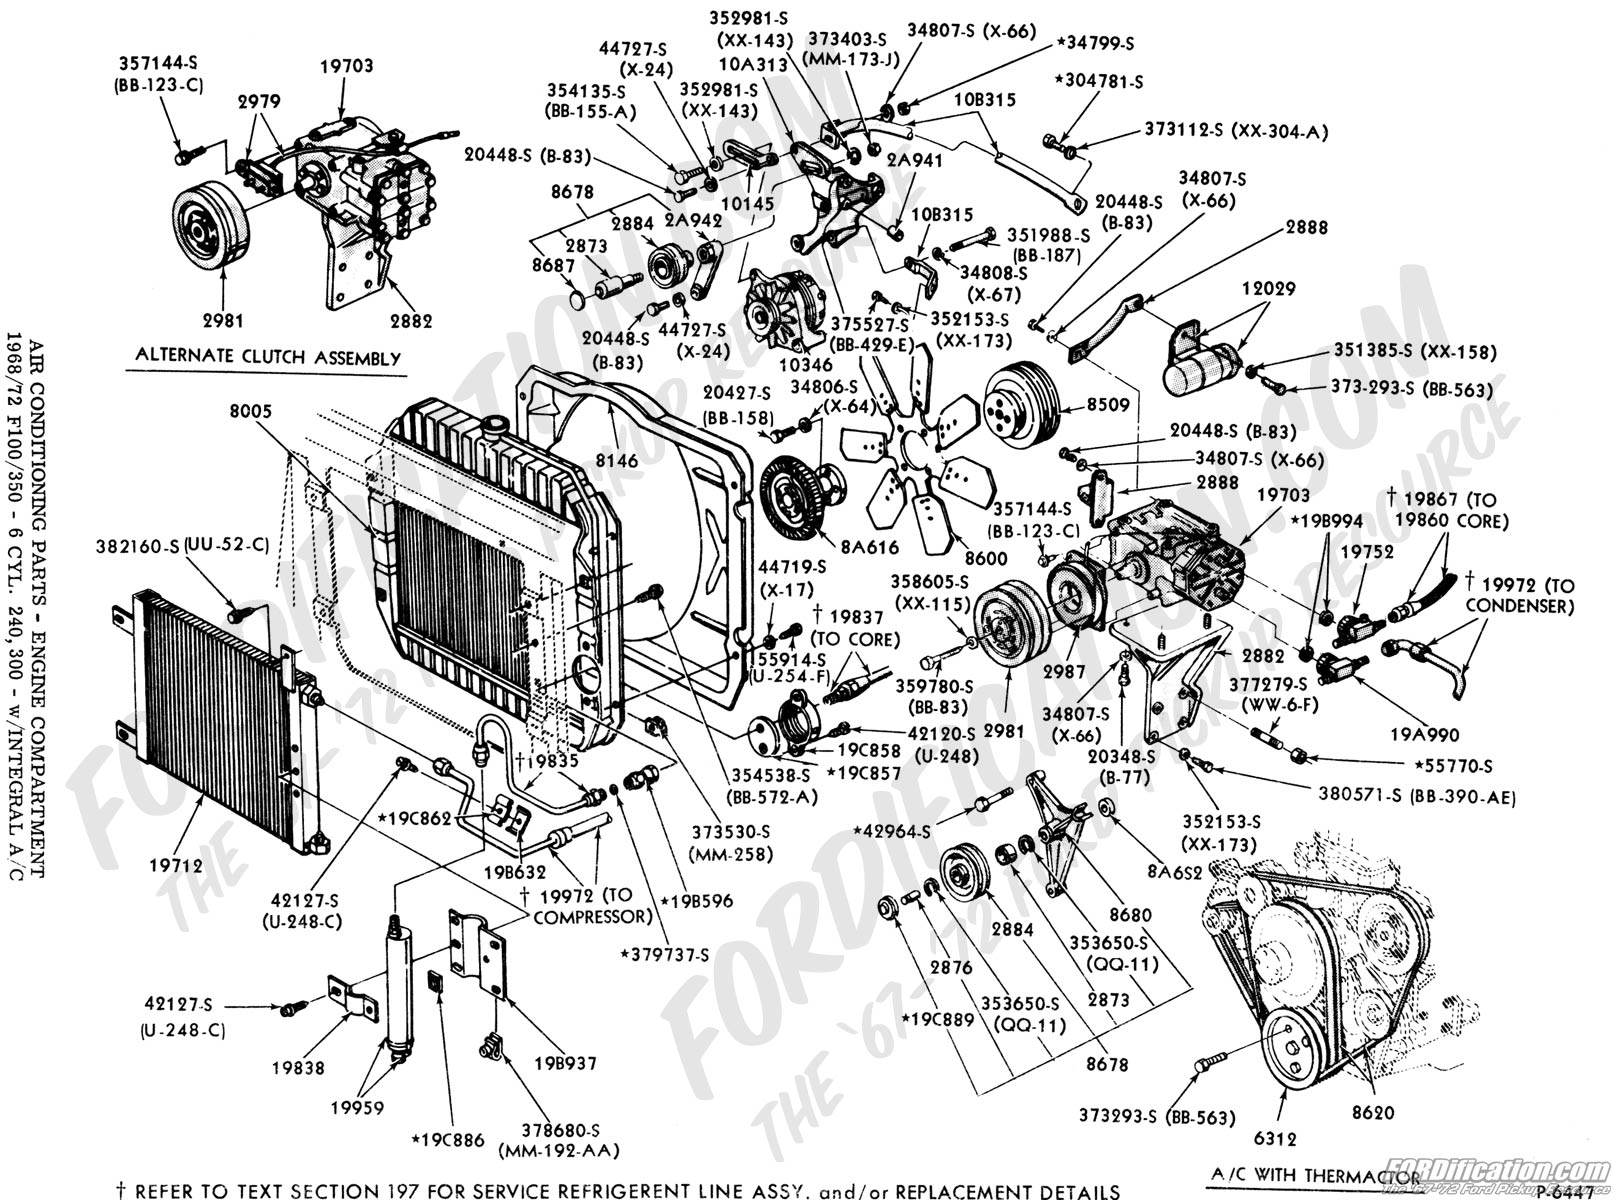 04 F350 Glow Plug Wiring Diagram 04 F350 Manual Wiring